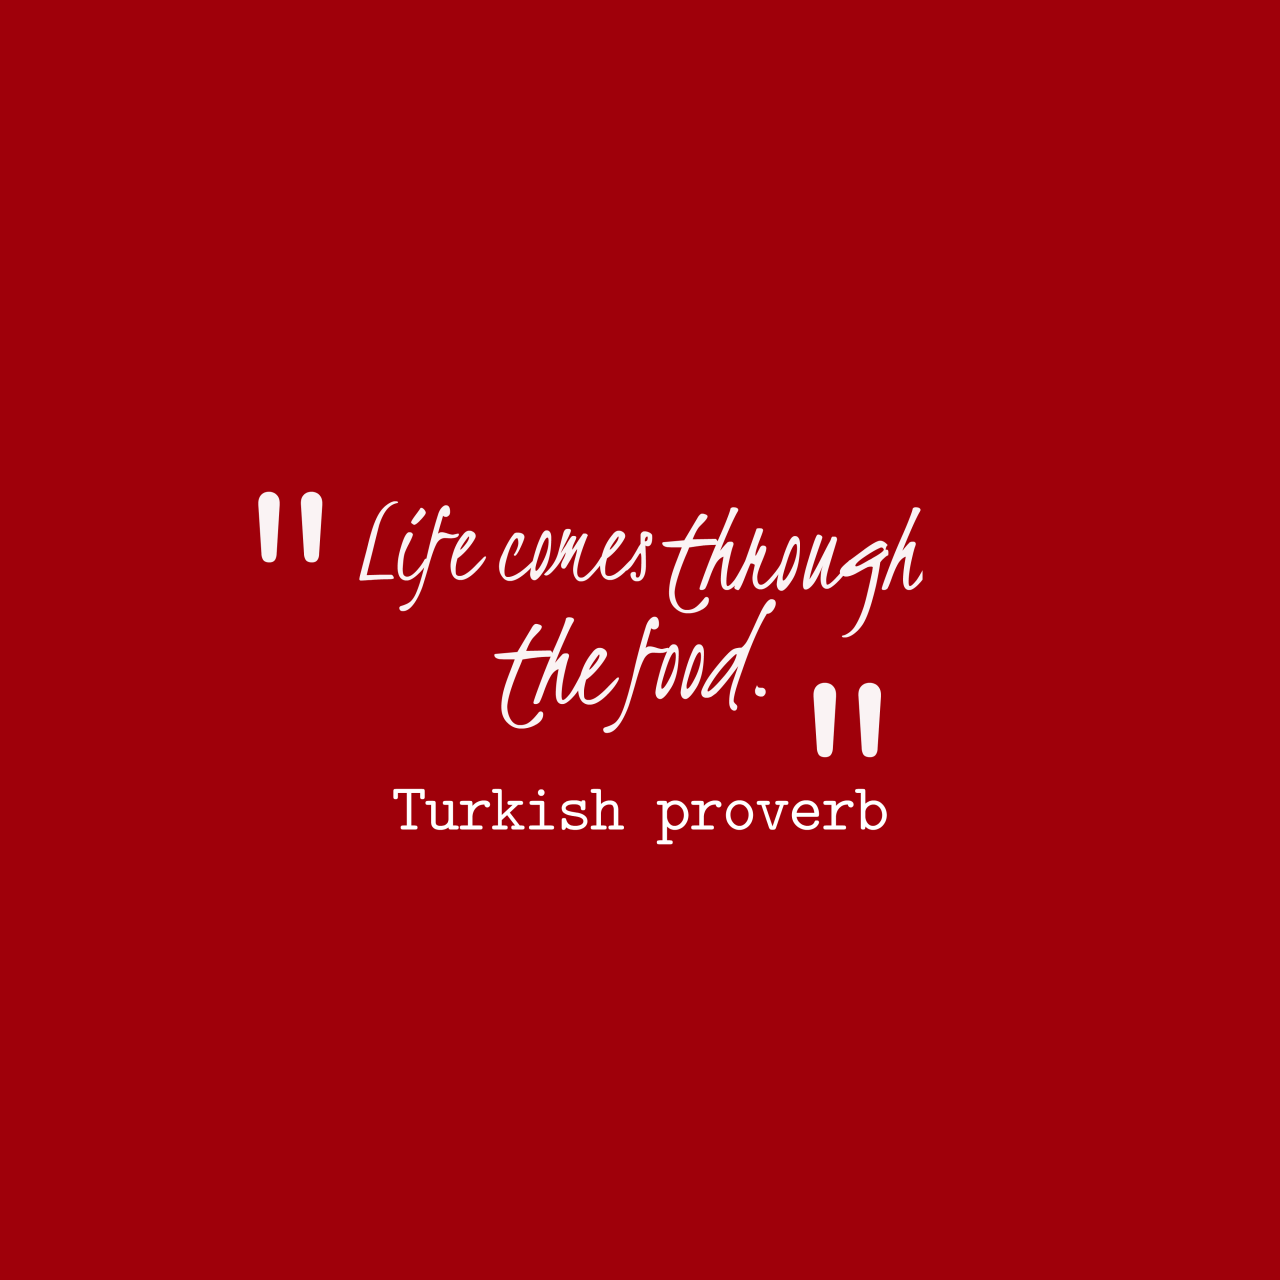 Turkish Proverb About Food